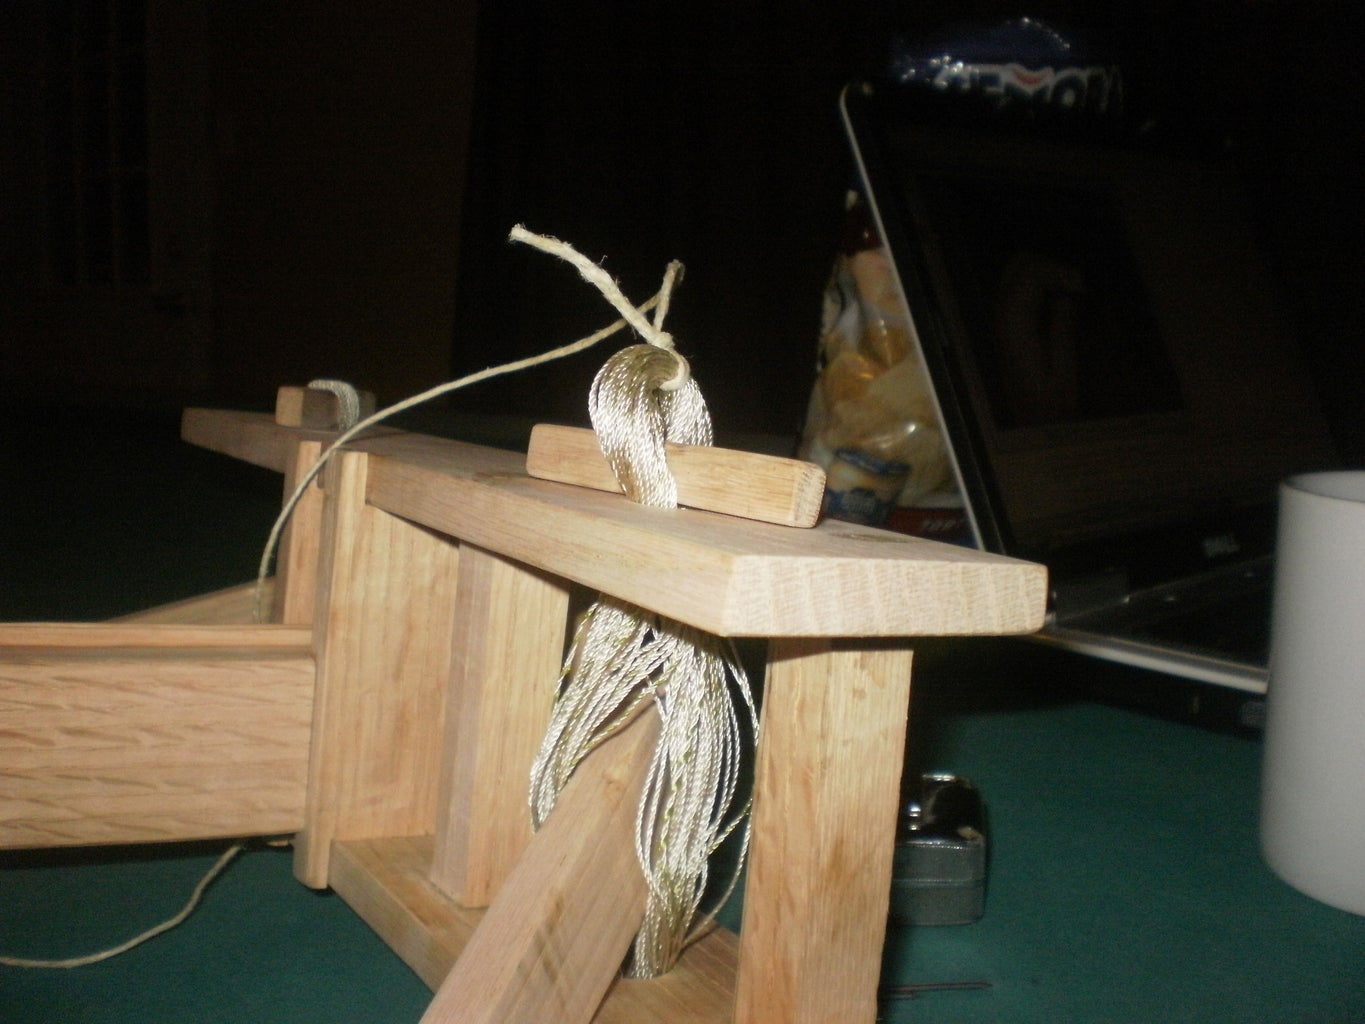 Attaching the Springs and Bow Limbs